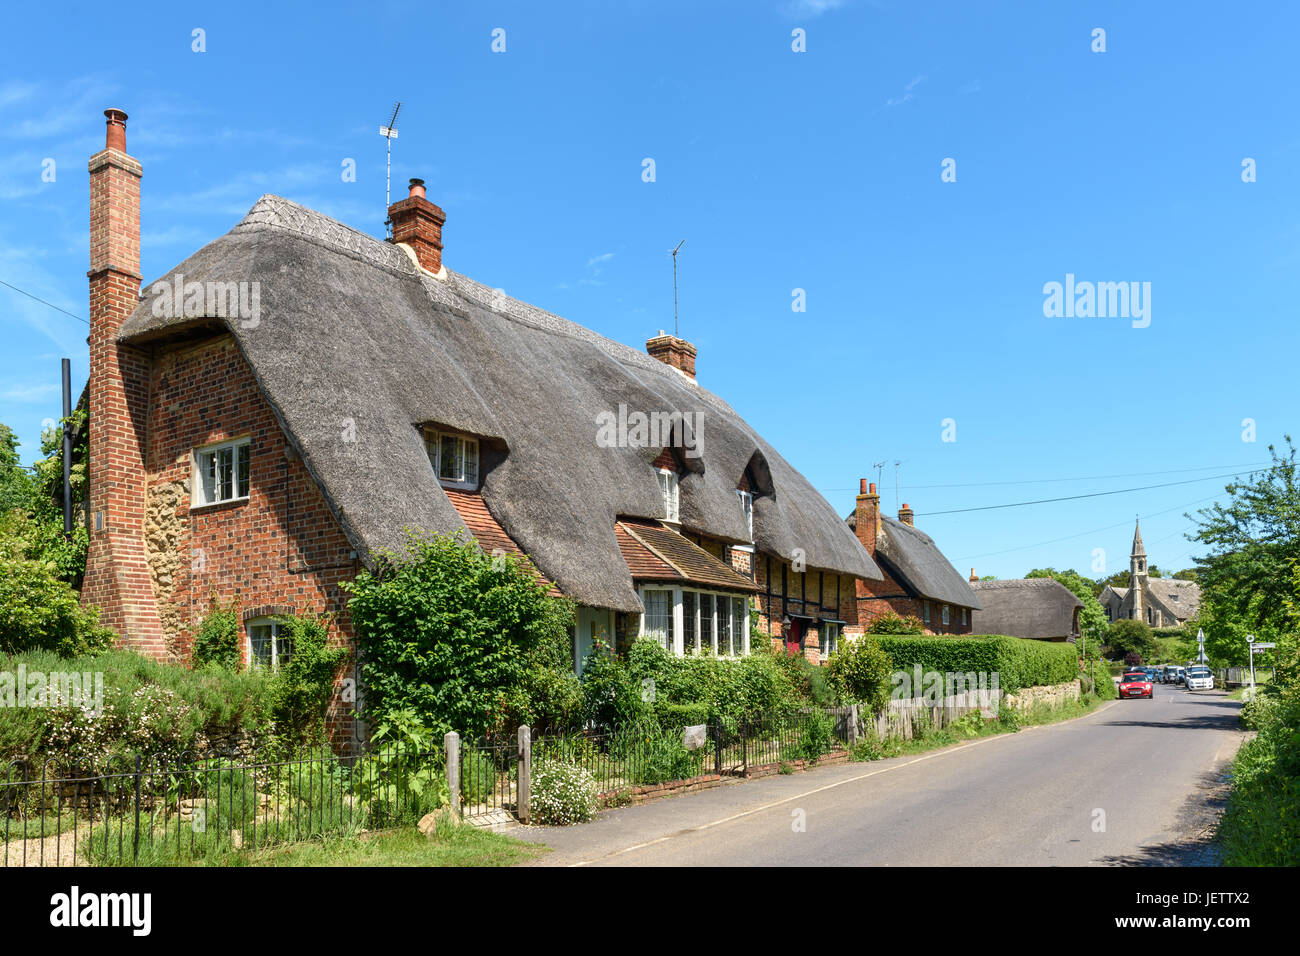 Thatched Cottages, Clifton Hampden, Oxfordshire, UK - Stock Image